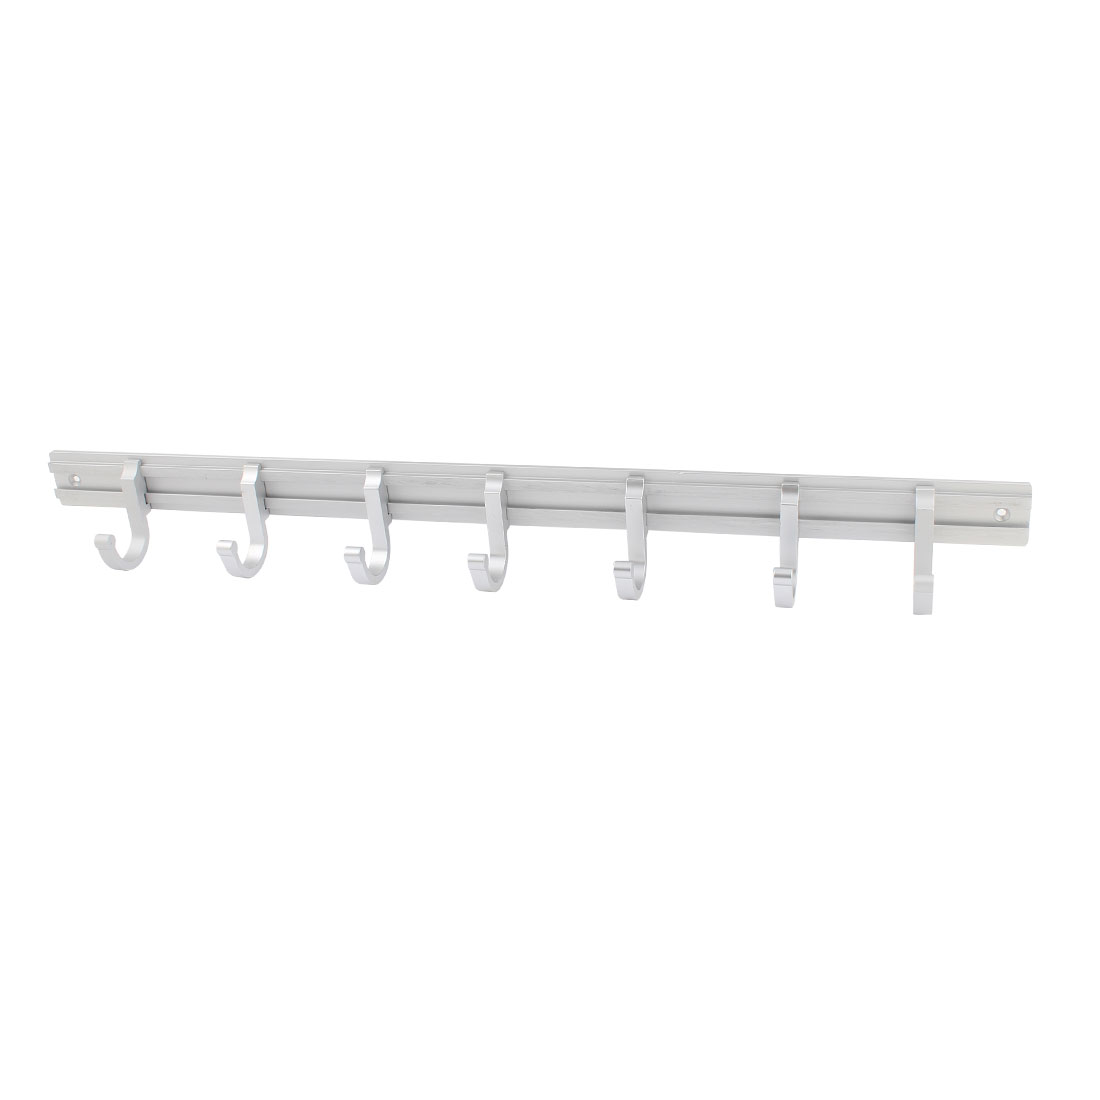 Silver Tone 52.5cm Long 7 Hooks Clothes Handbag Towel Hanger Wall Hook Rail